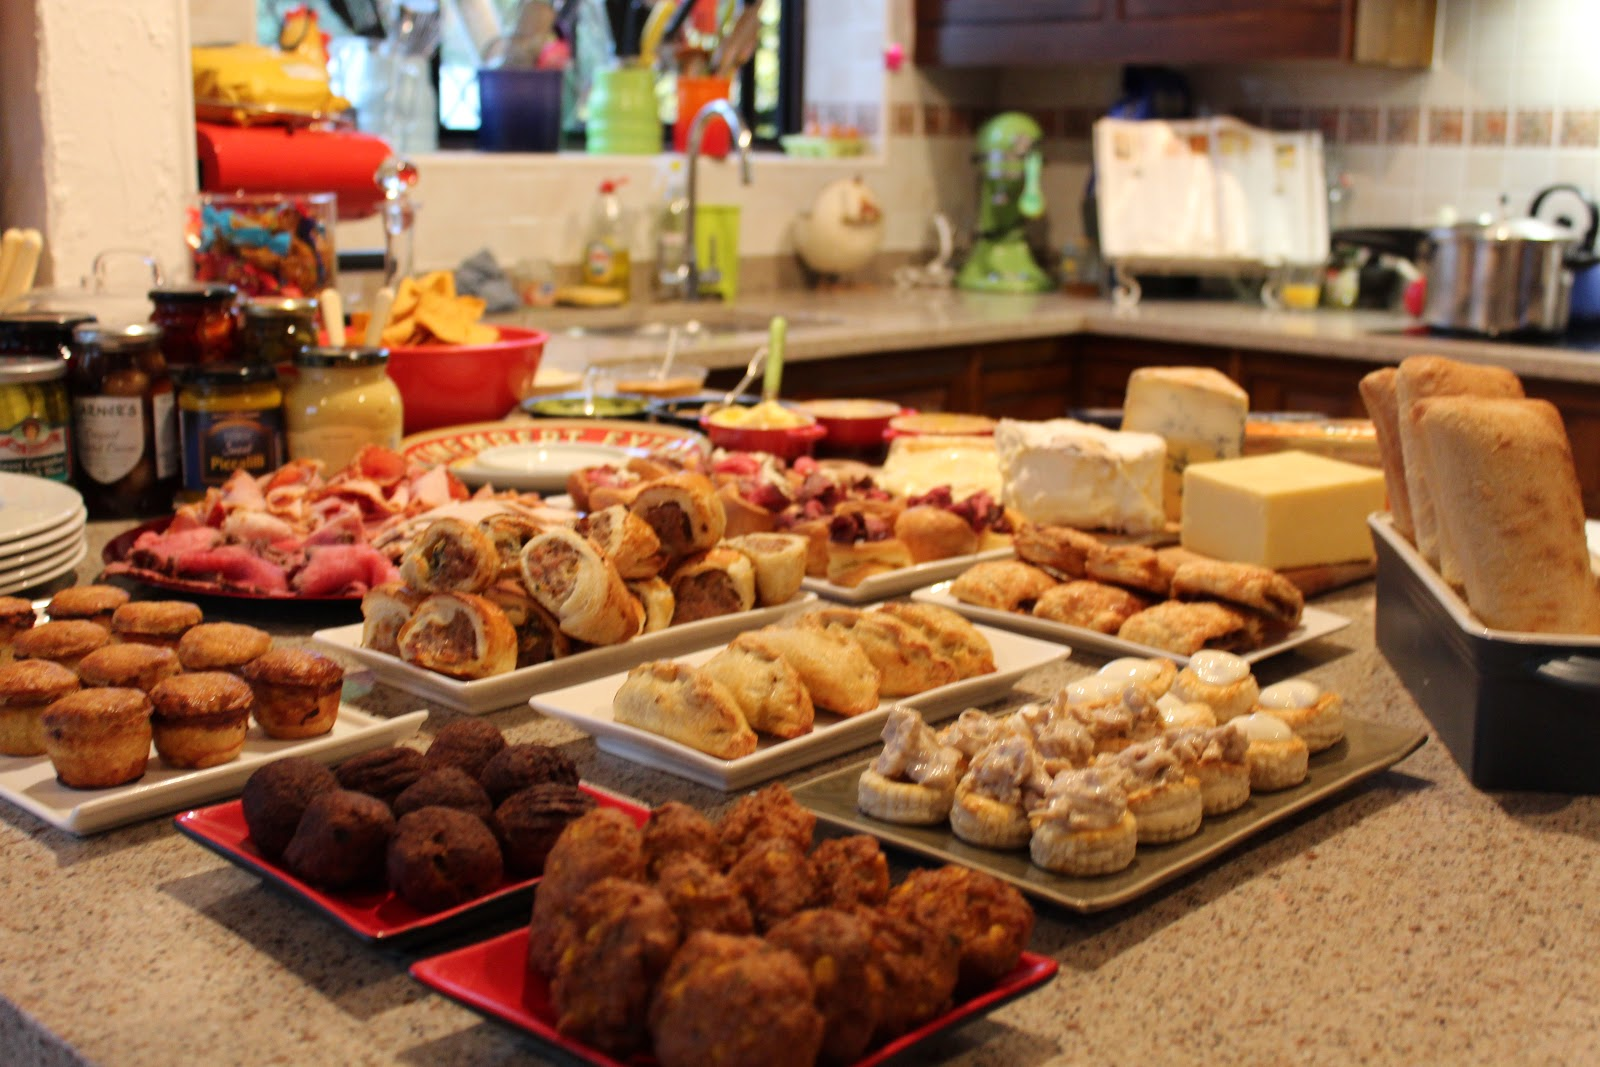 Boxing Day Traditional Buffet Cold Cuts Pickles Beets Mini Pies Pasties Turkey Voluvents Chips And Dips